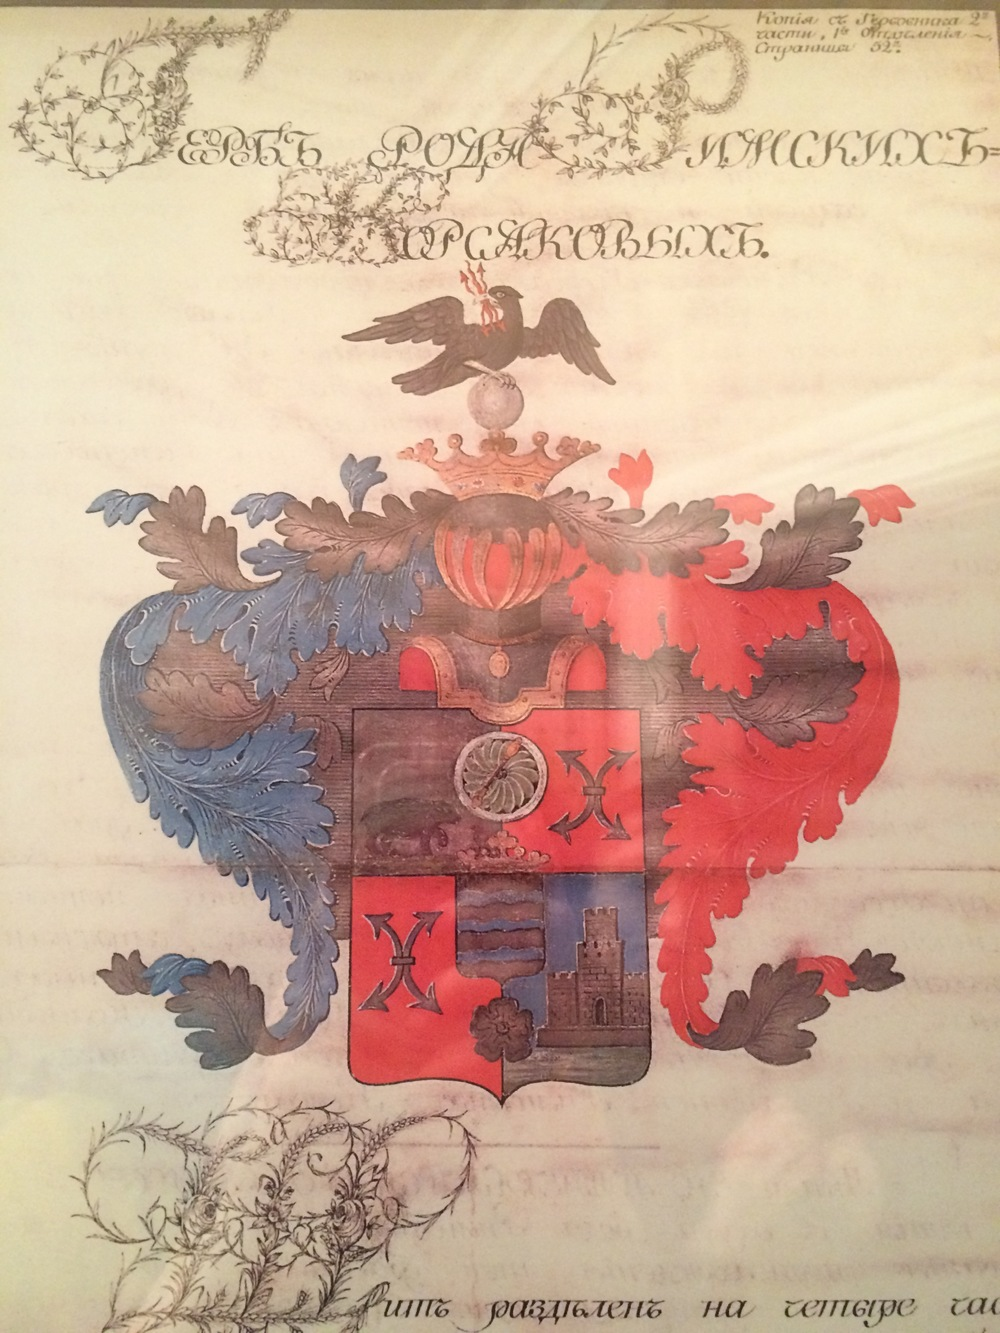 This is the Rimsky-Korsakov family crest. I really want to do a heraldry analysis on it.